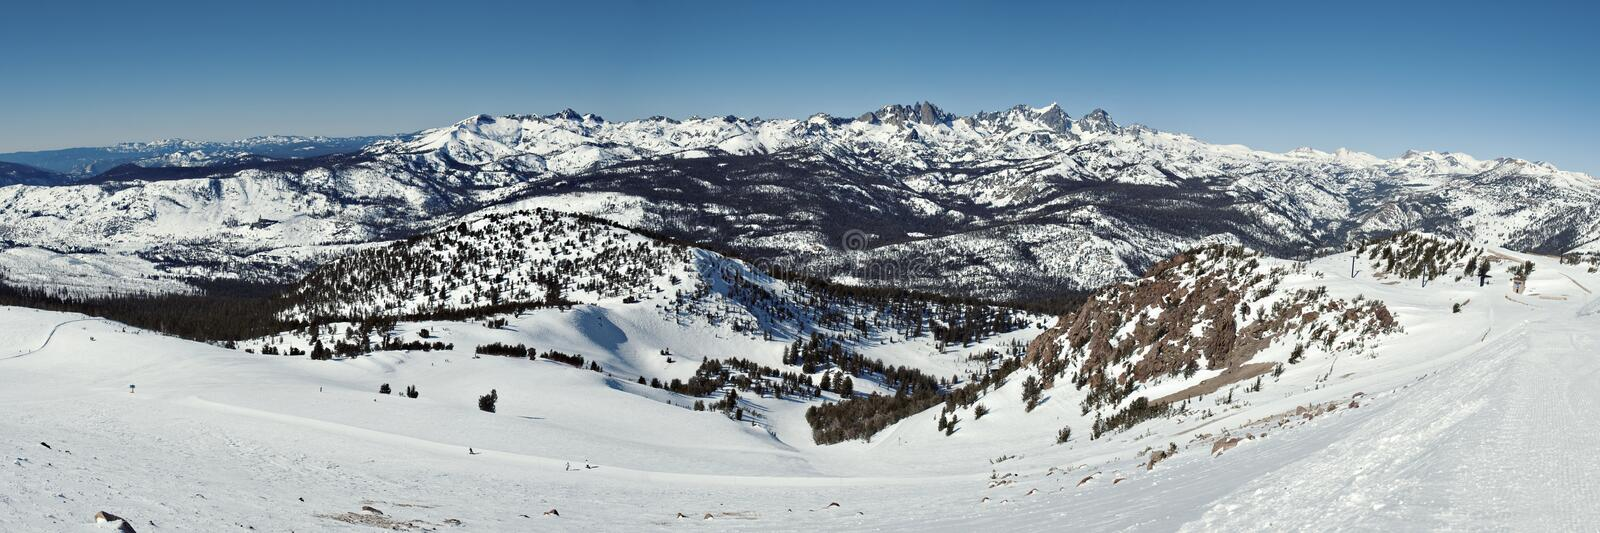 Postérieur de Mammoth Mountain photo stock